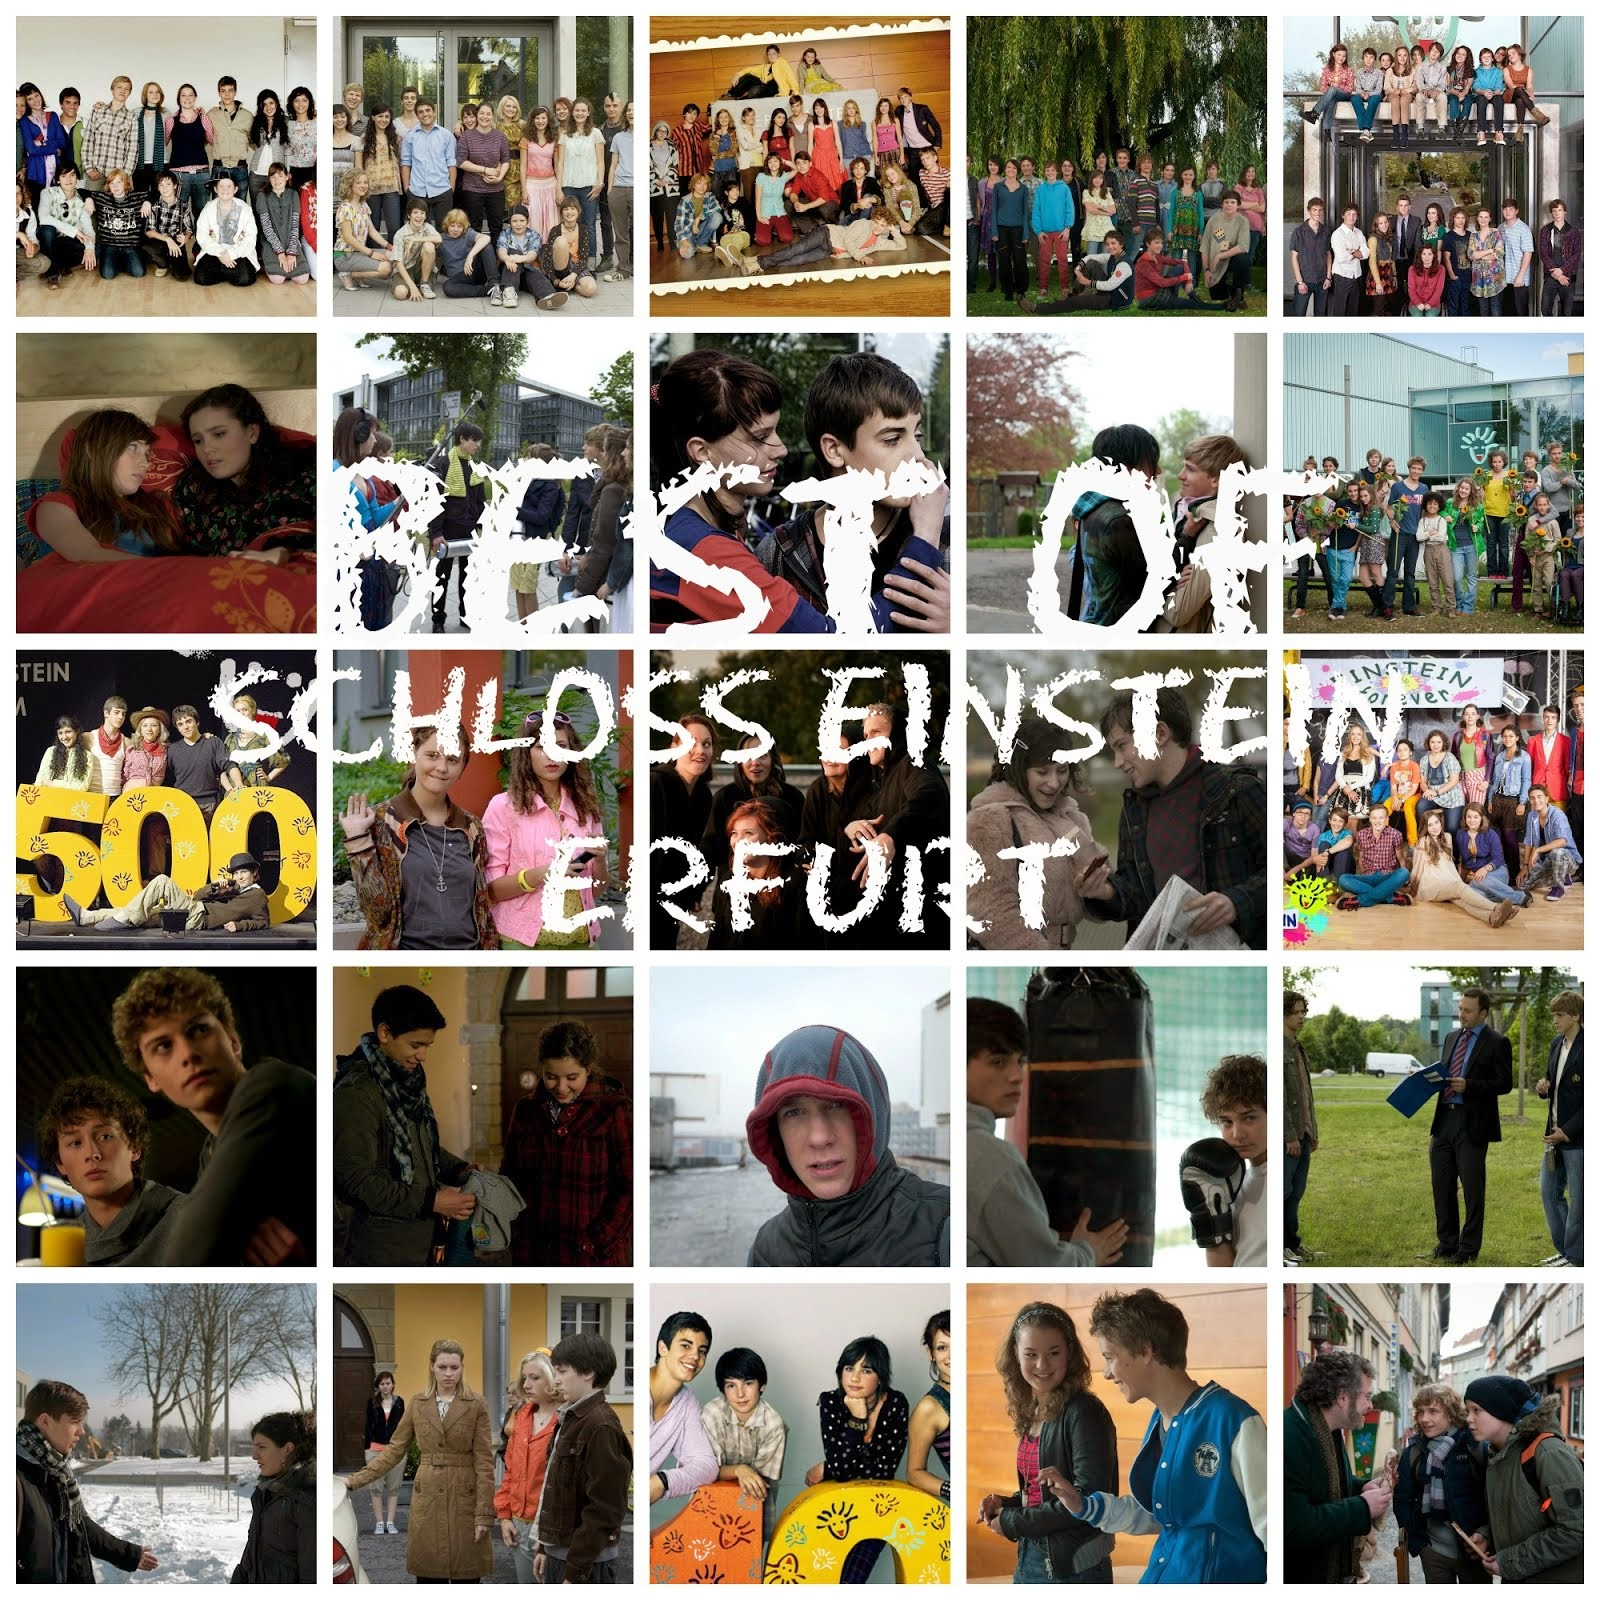 BEST OF - Das Voting